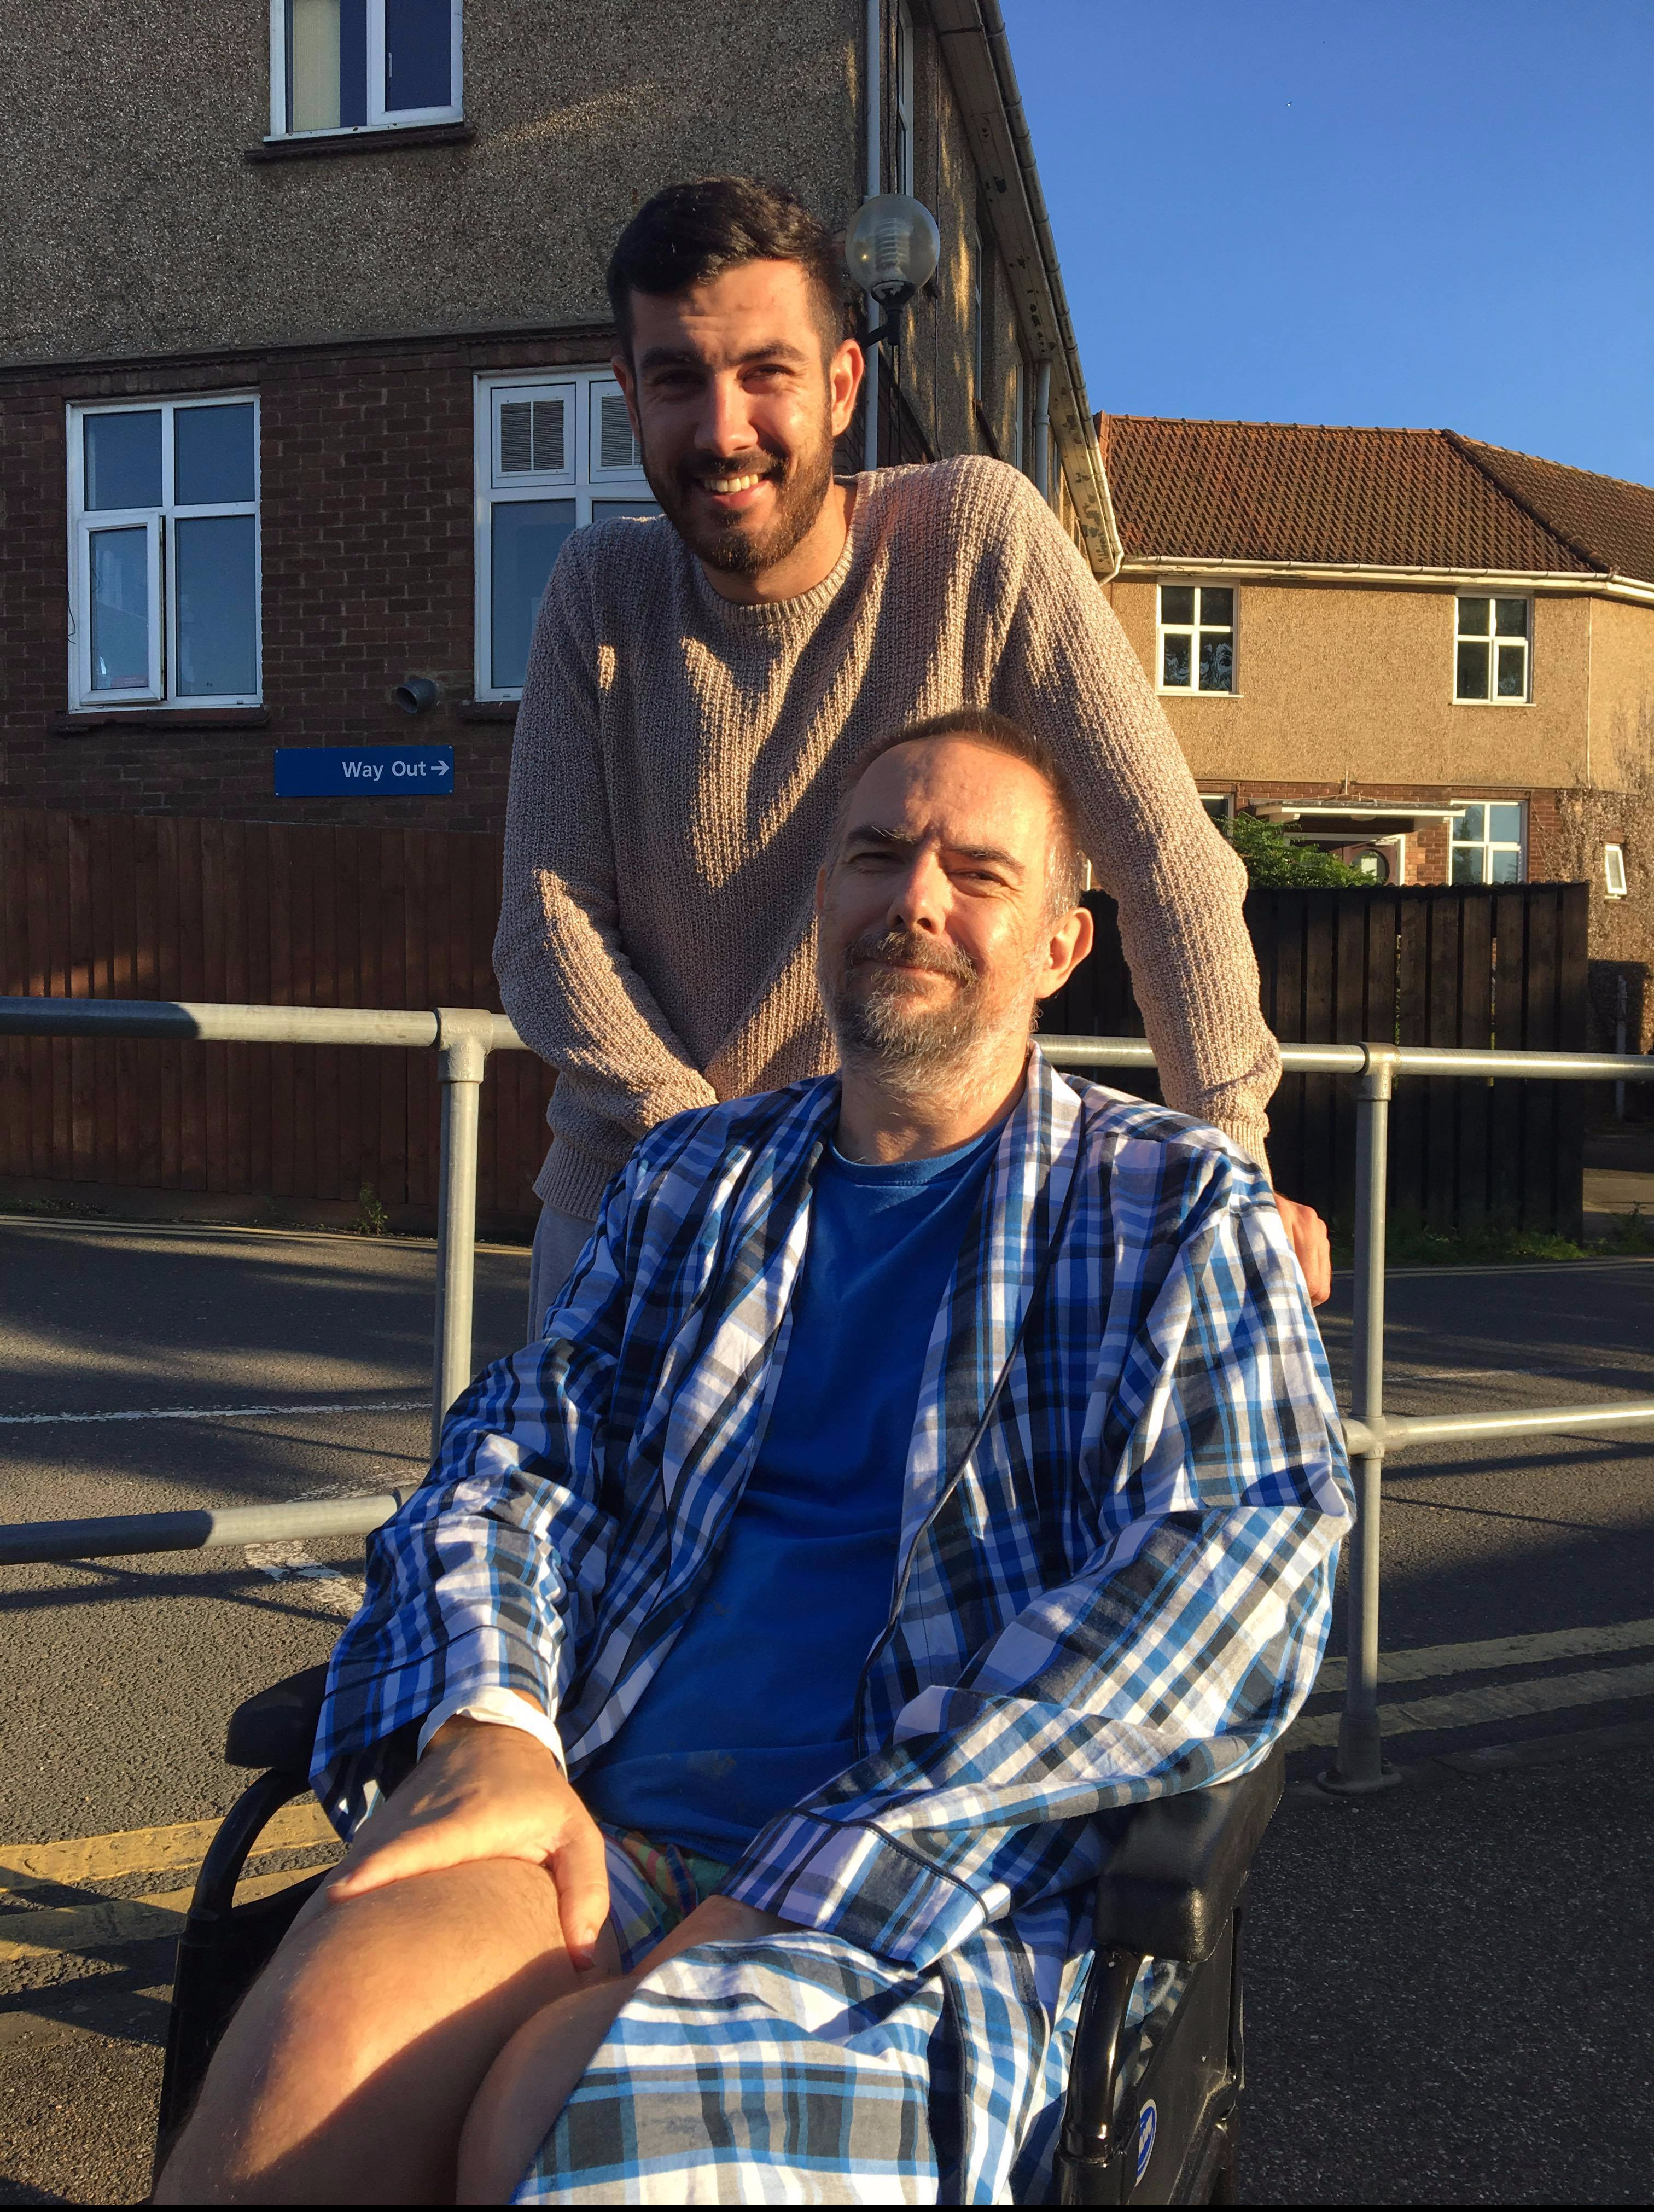 Dad and brother in the sun at Papworth Hospital